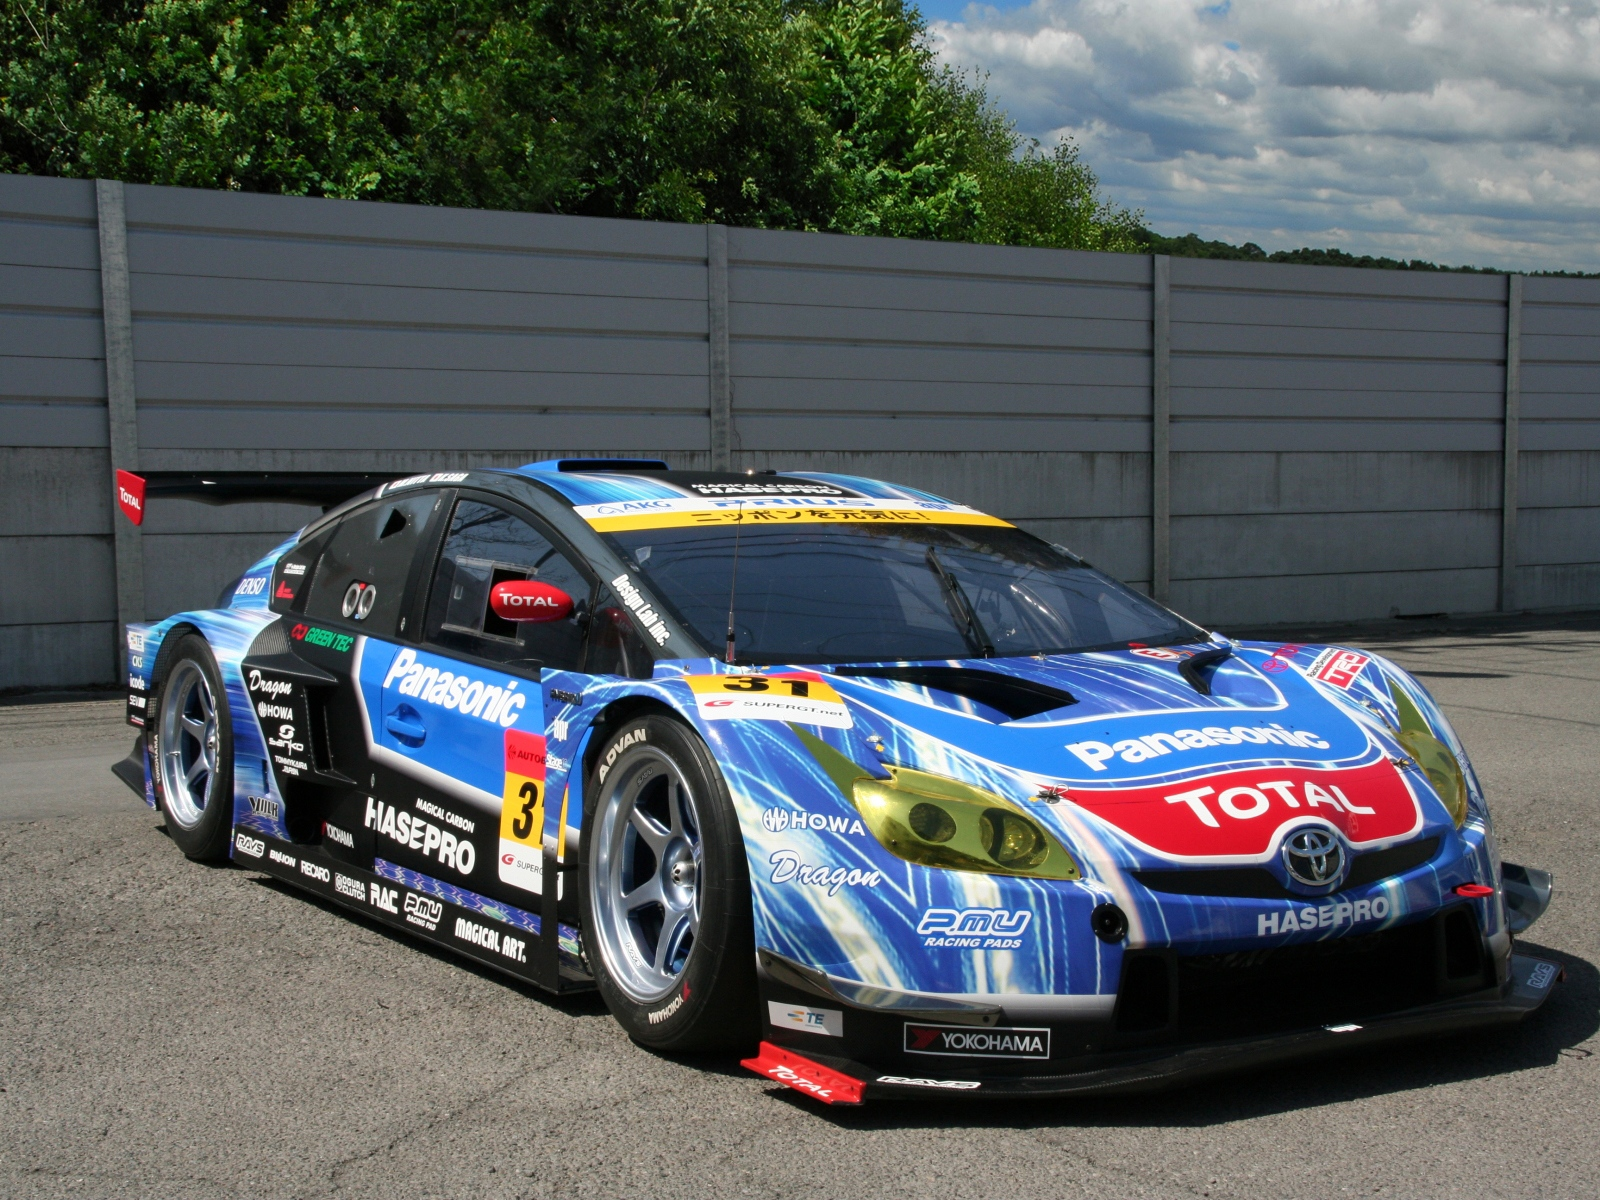 Toyota Prius GT300 Super GT '2012 Wallpaper And Background